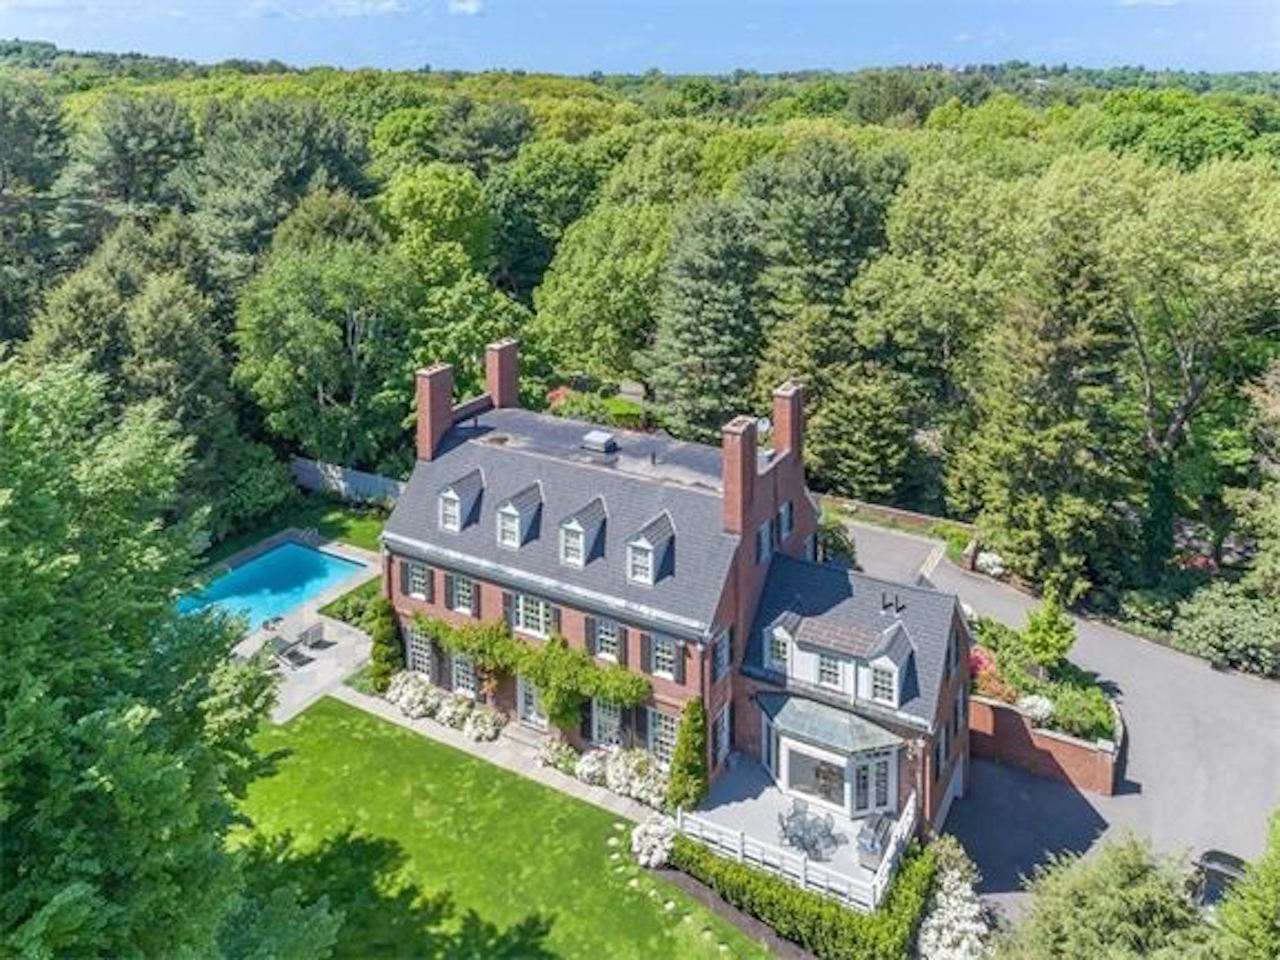 Historic 14-room home in Brookline on sale for $15.9 million